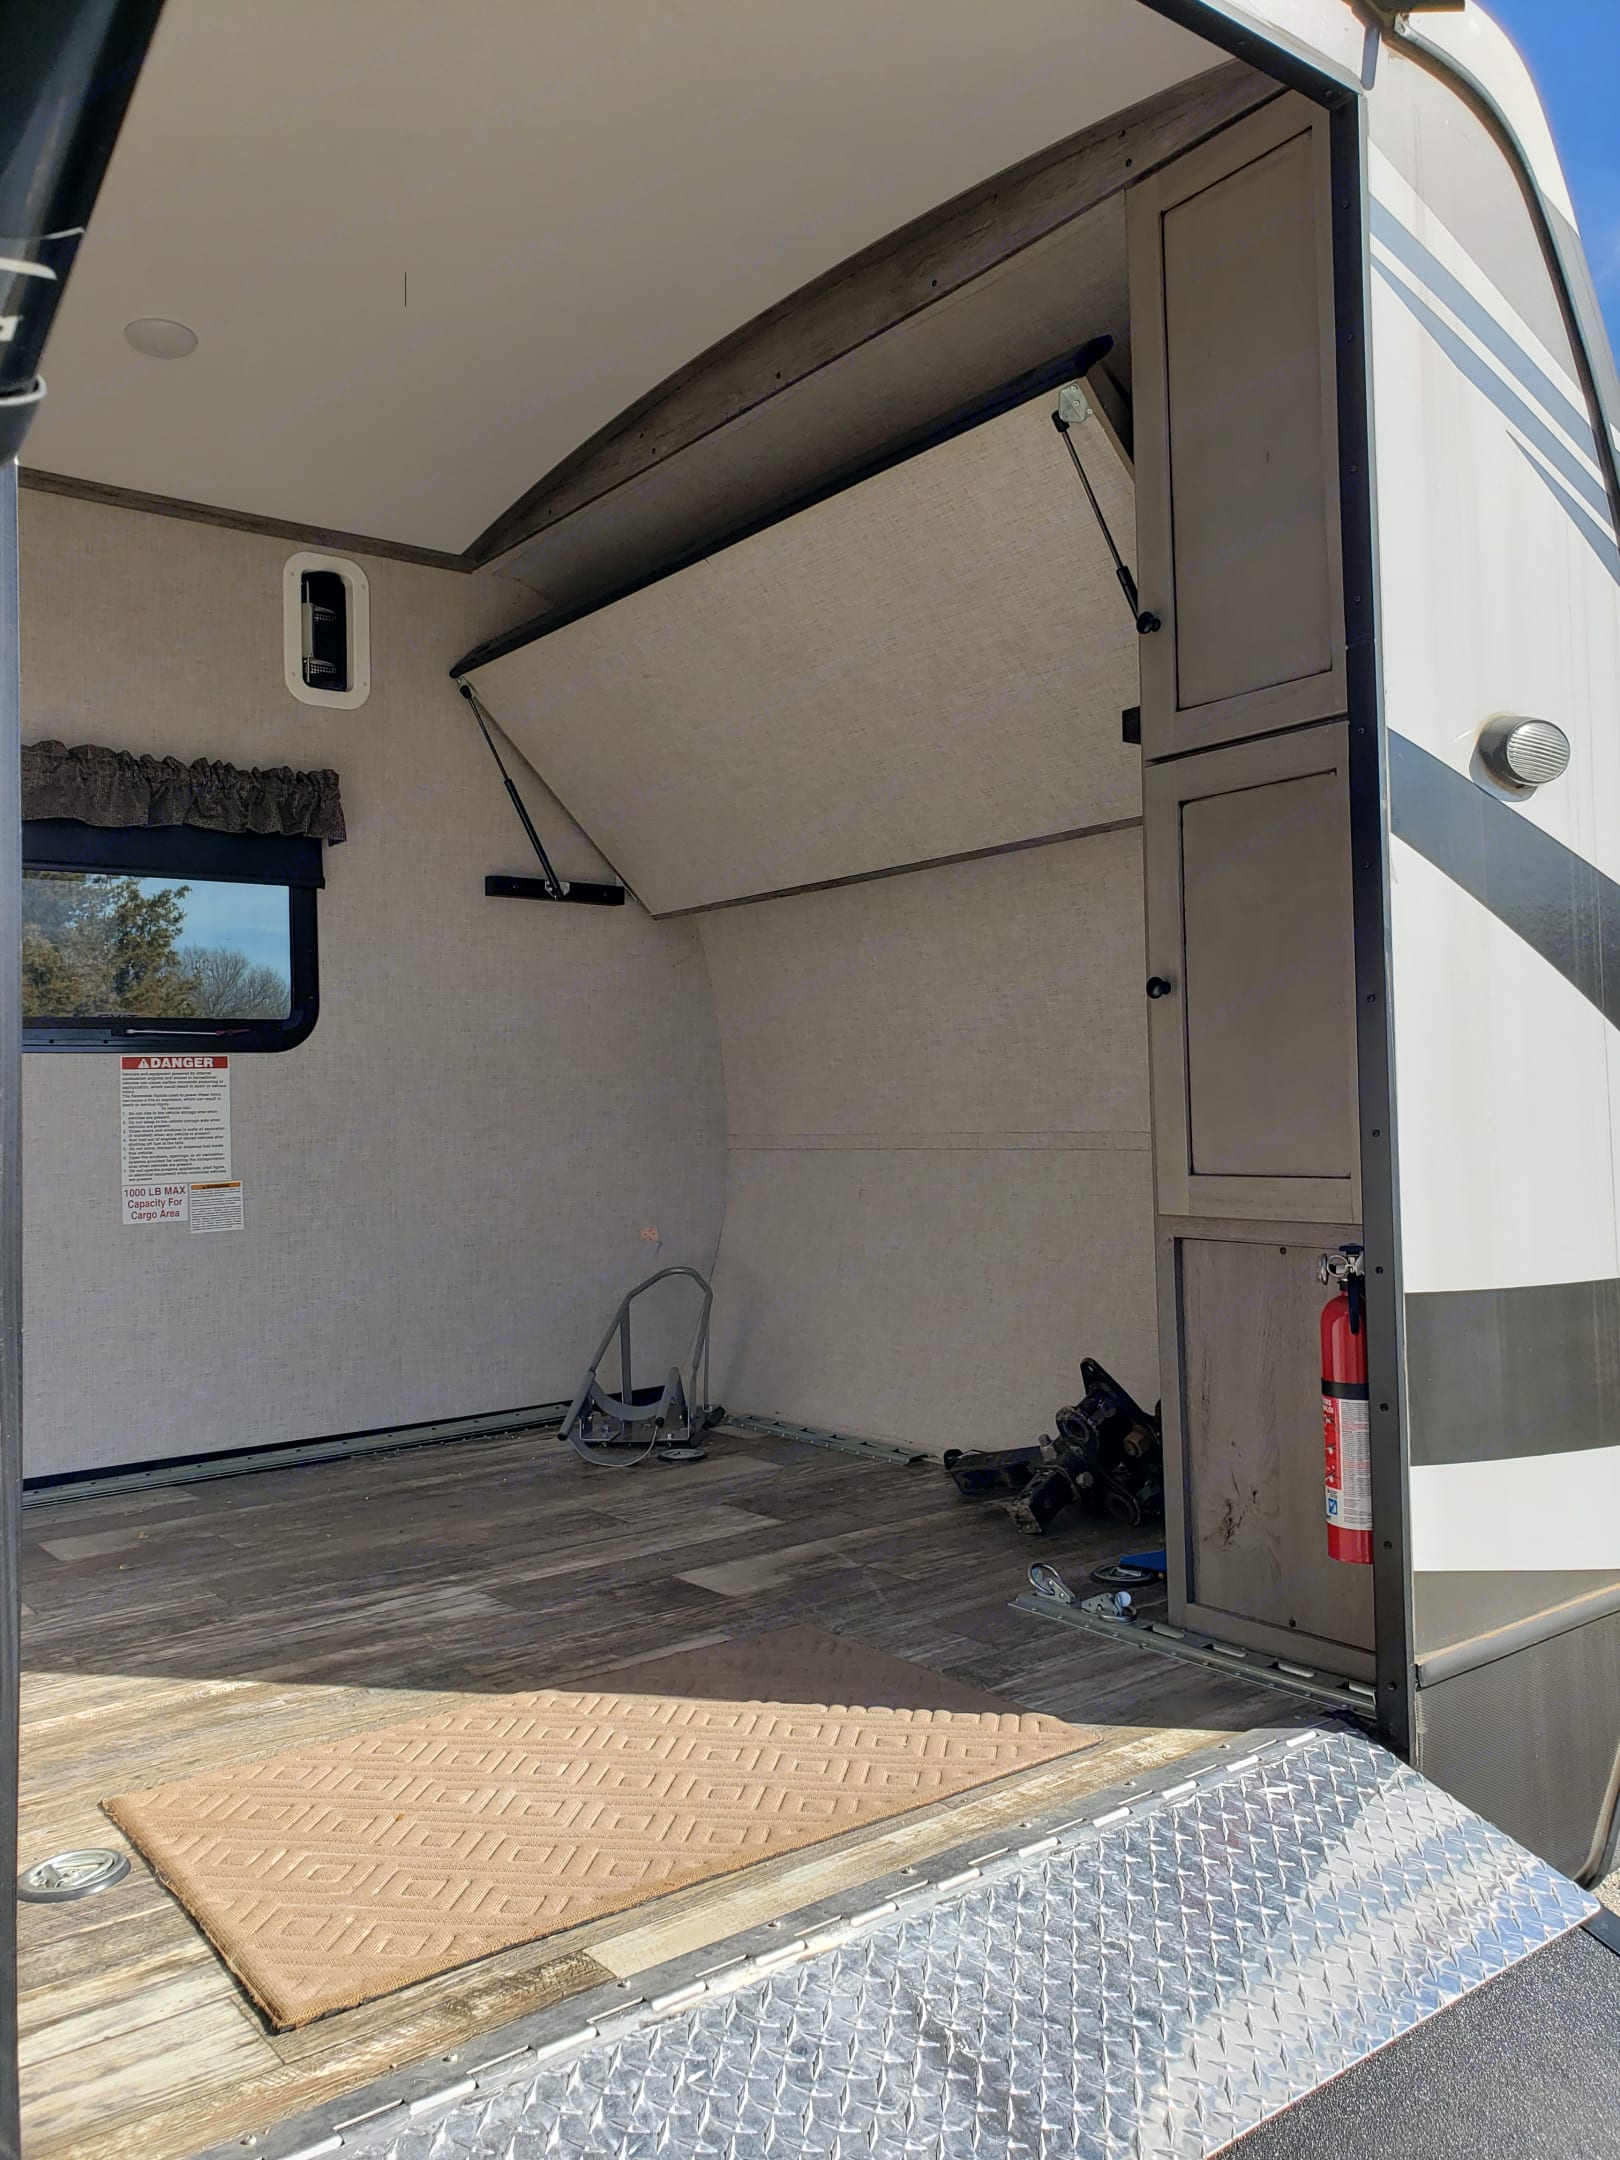 Wheel chock in the back corner for your Harley. Pull down storage shelf and a corner storage cabinet.  E-rail tie down system to secure your load. . Keystone Outback 2019